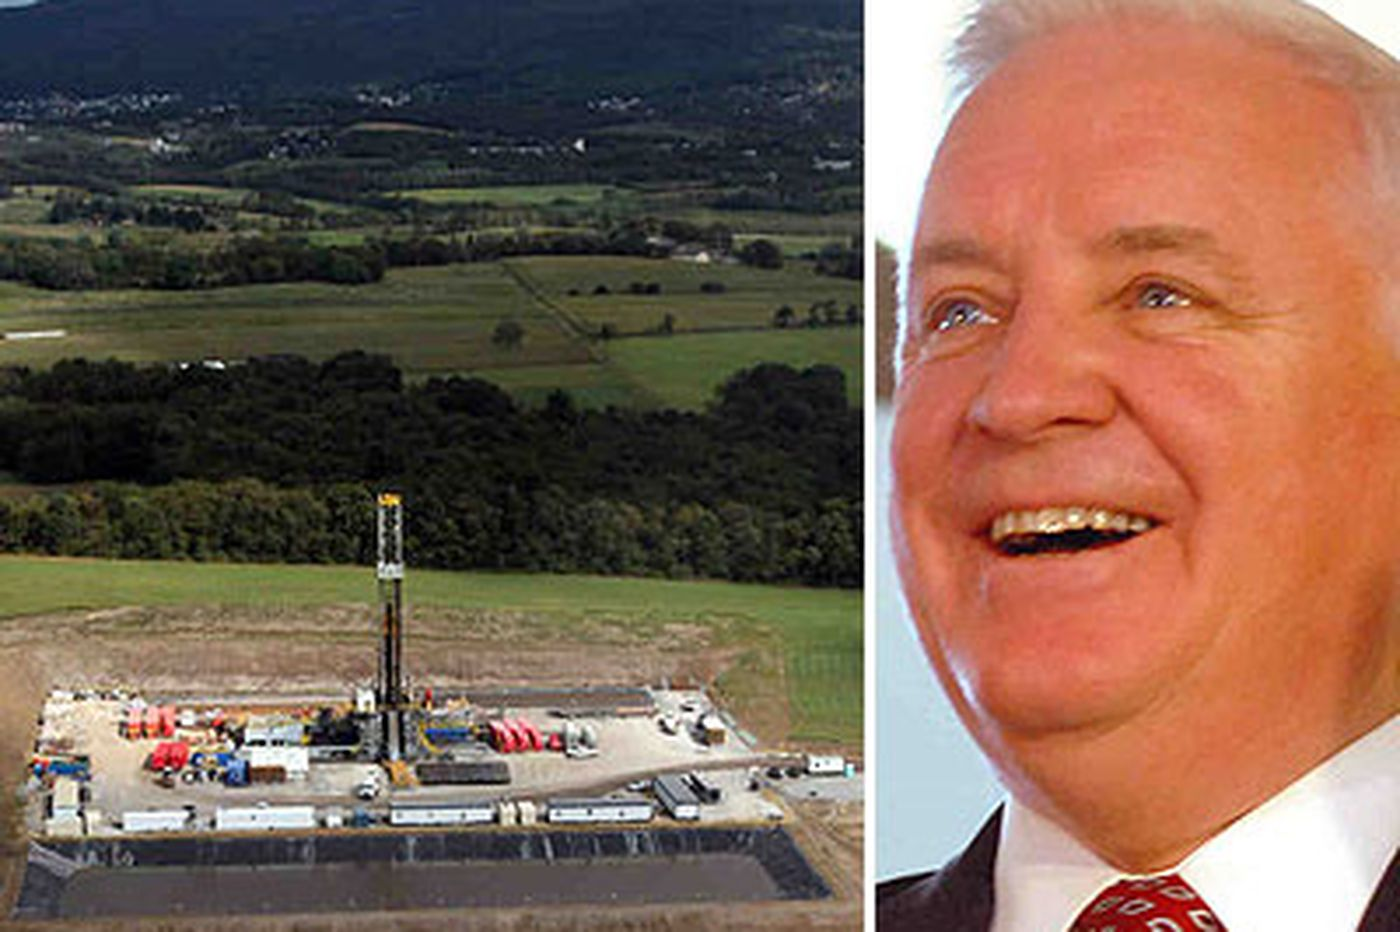 Corbett maintains hard line on no Marcellus Shale tax